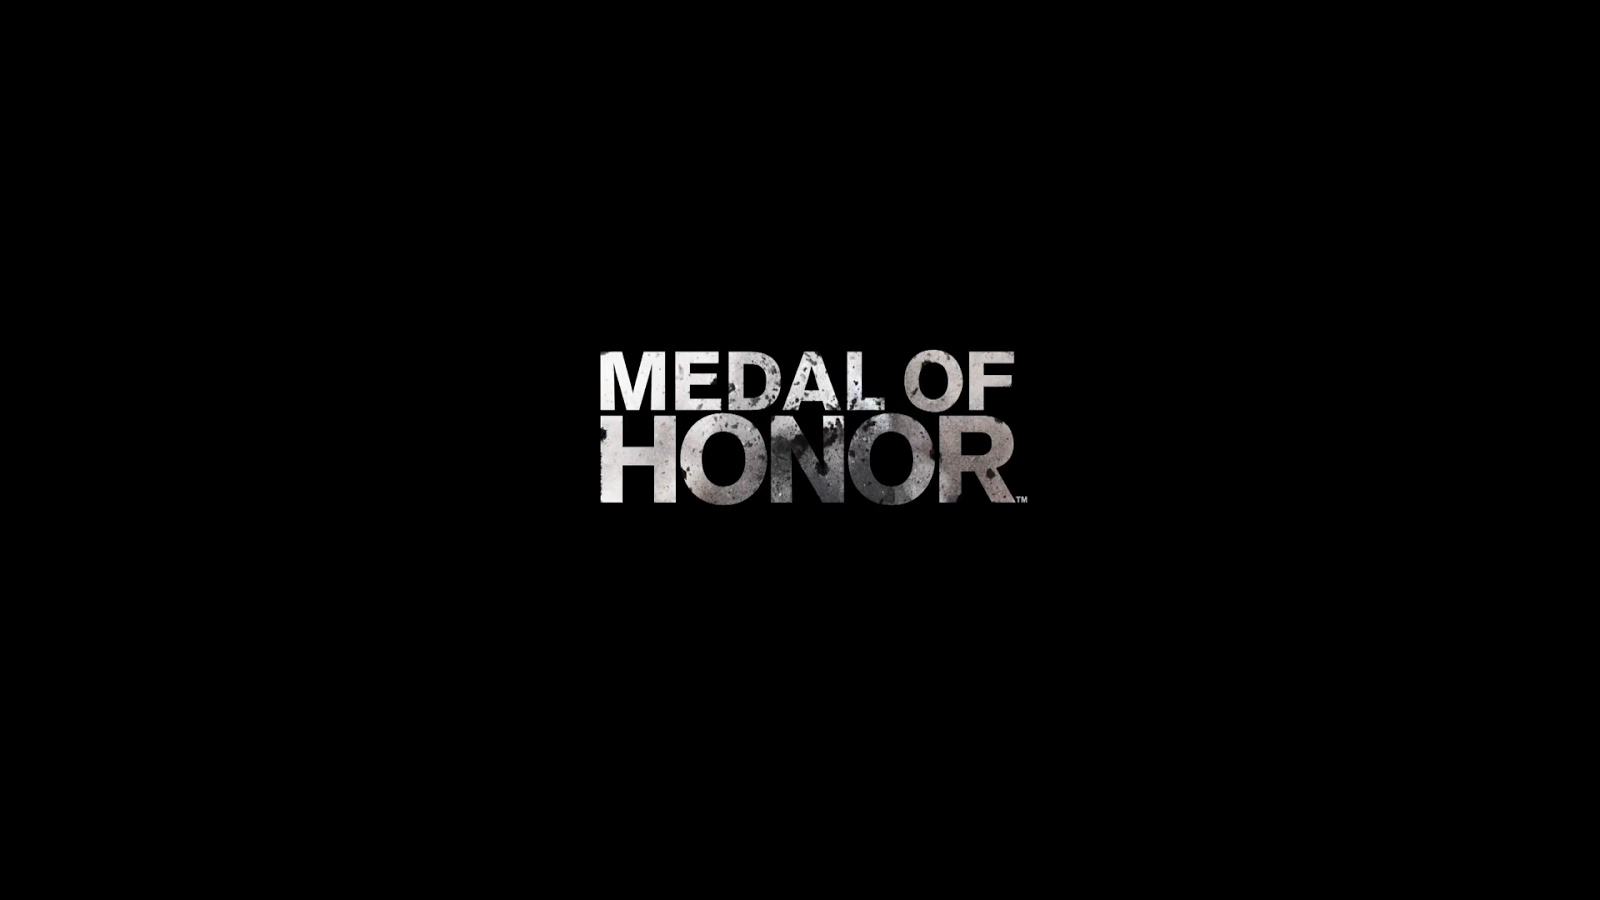 Medal Of Honor Wallpaper Free Download